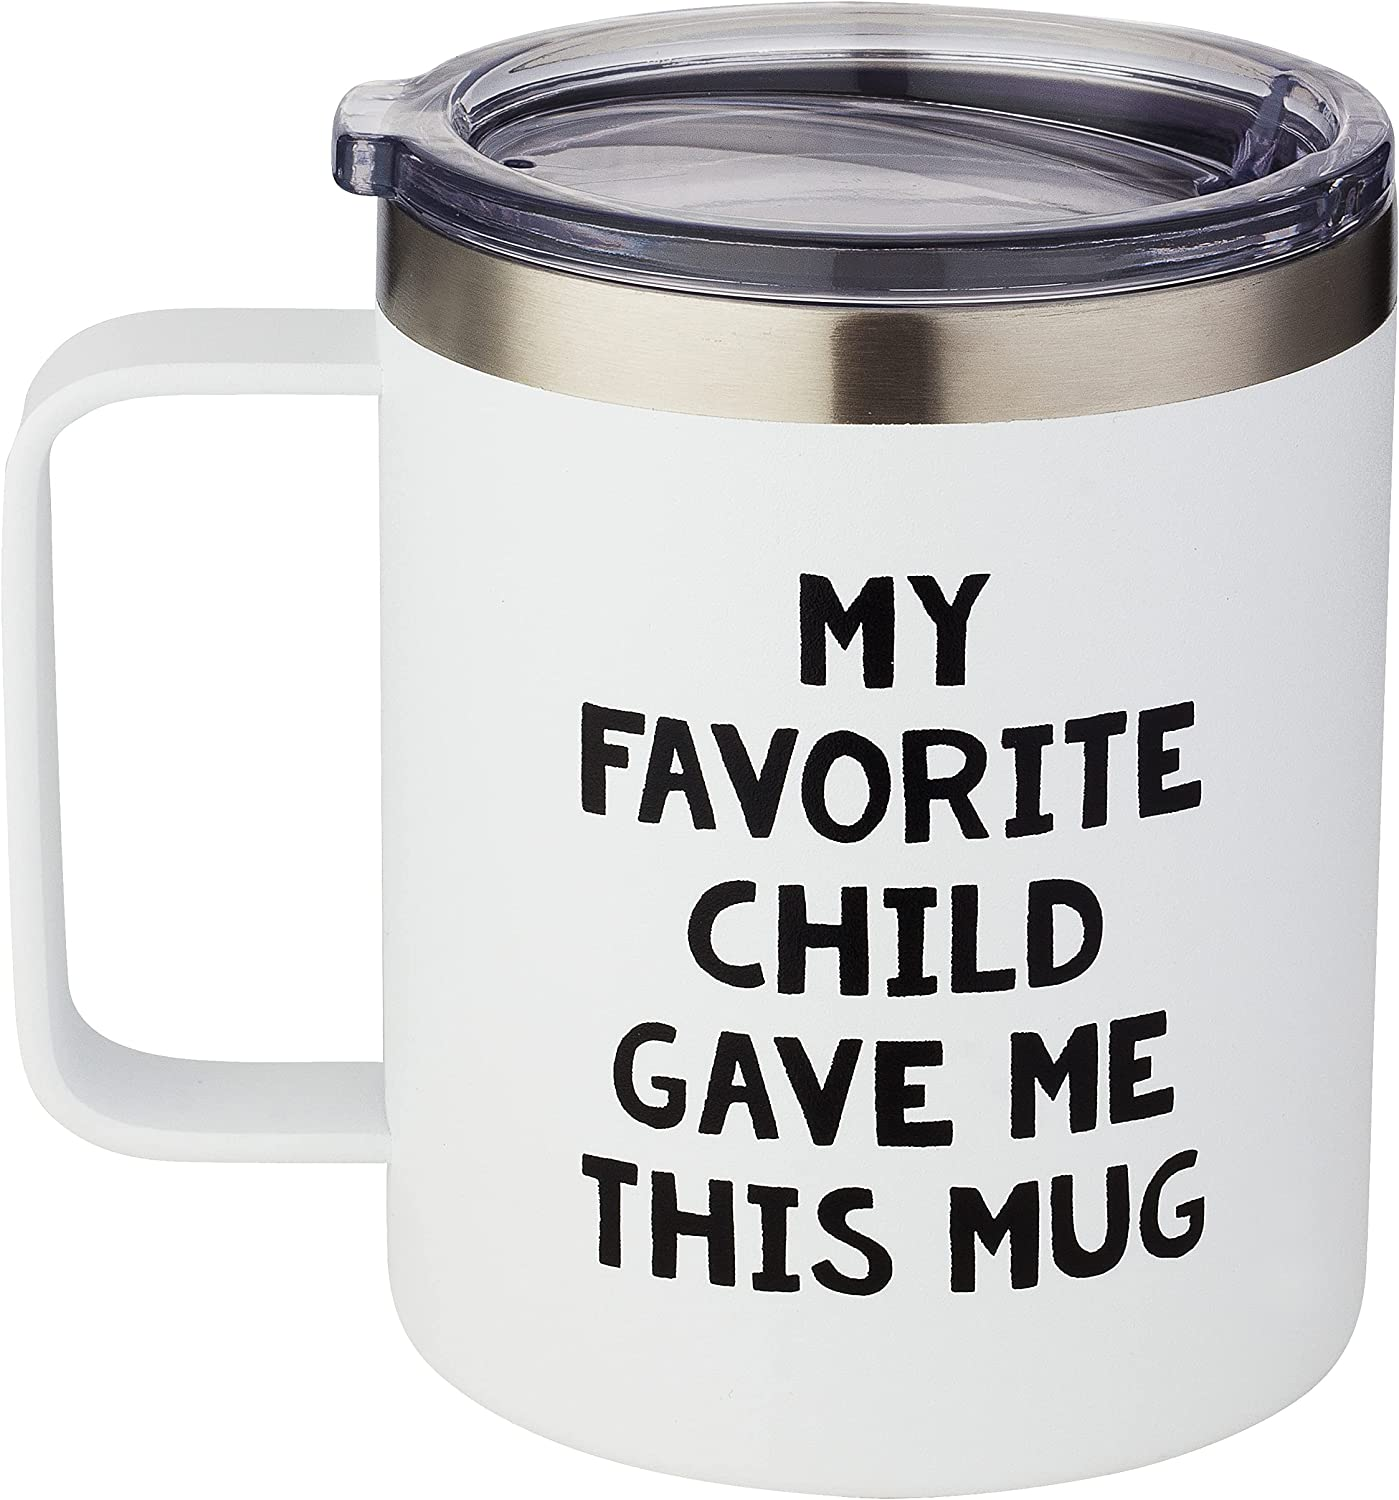 Lightweight & Insulated 12oz Coffee Mug with Lid and Handle - My Favorite Child Gave Me This Mug - Mom Birthday Gifts From Daughter - Gifts For Mom, Dad, Women, Men, Christmas, Retirement, Anniversary